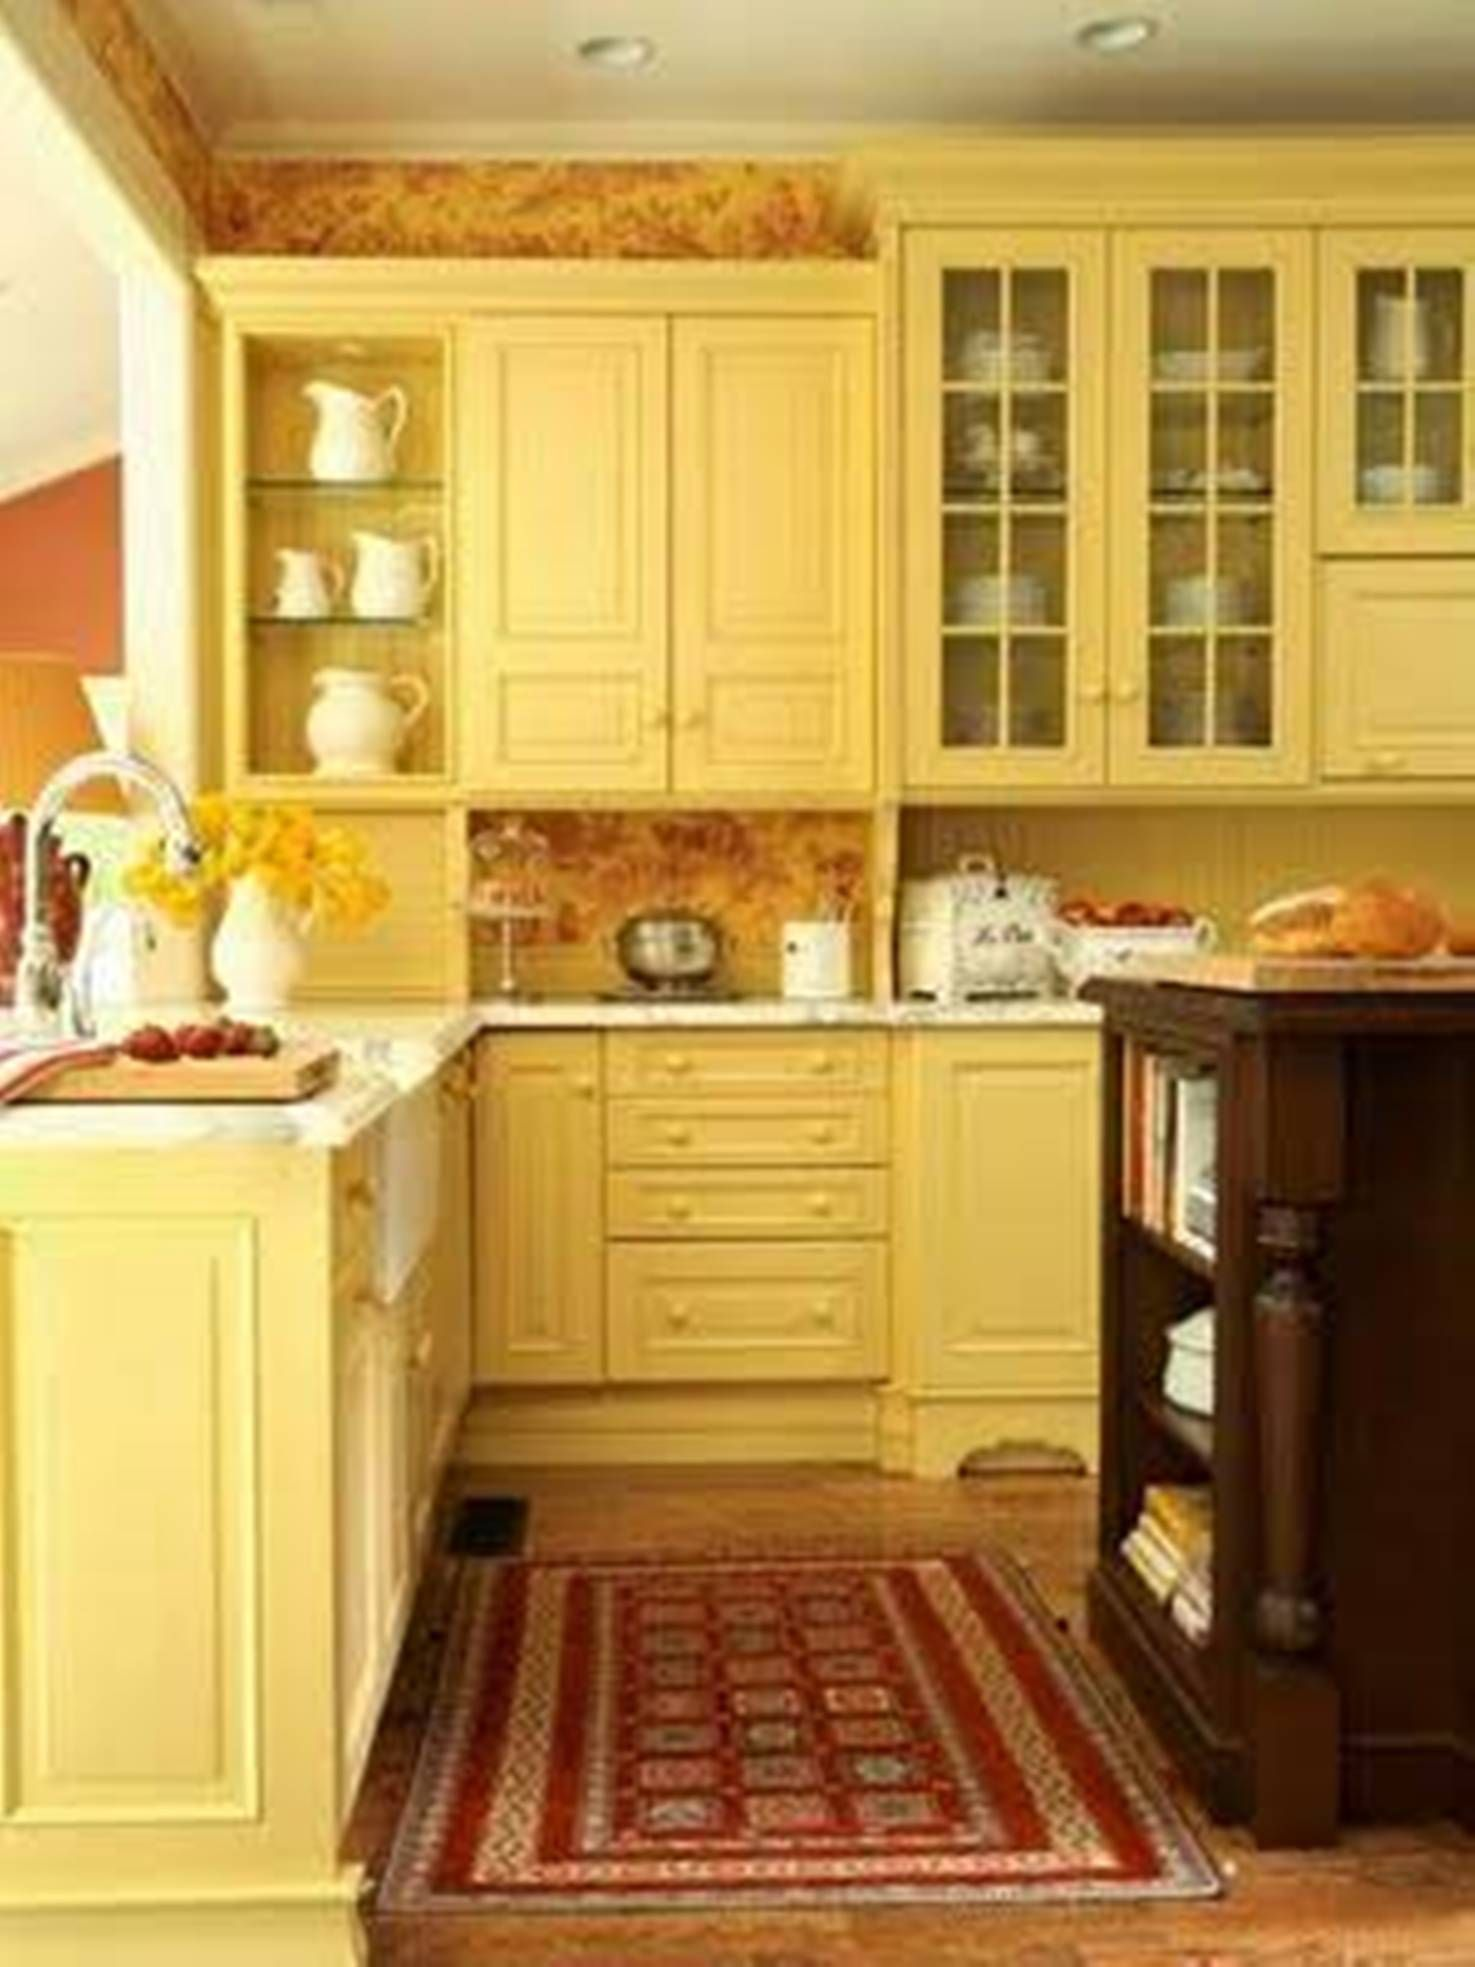 Gorgeous Yellow Kitchen Cabinet On House Decorating Inspiration With Country Kitchen With Yellow Yellow Kitchen Cabinets Yellow Kitchen Yellow Kitchen Designs